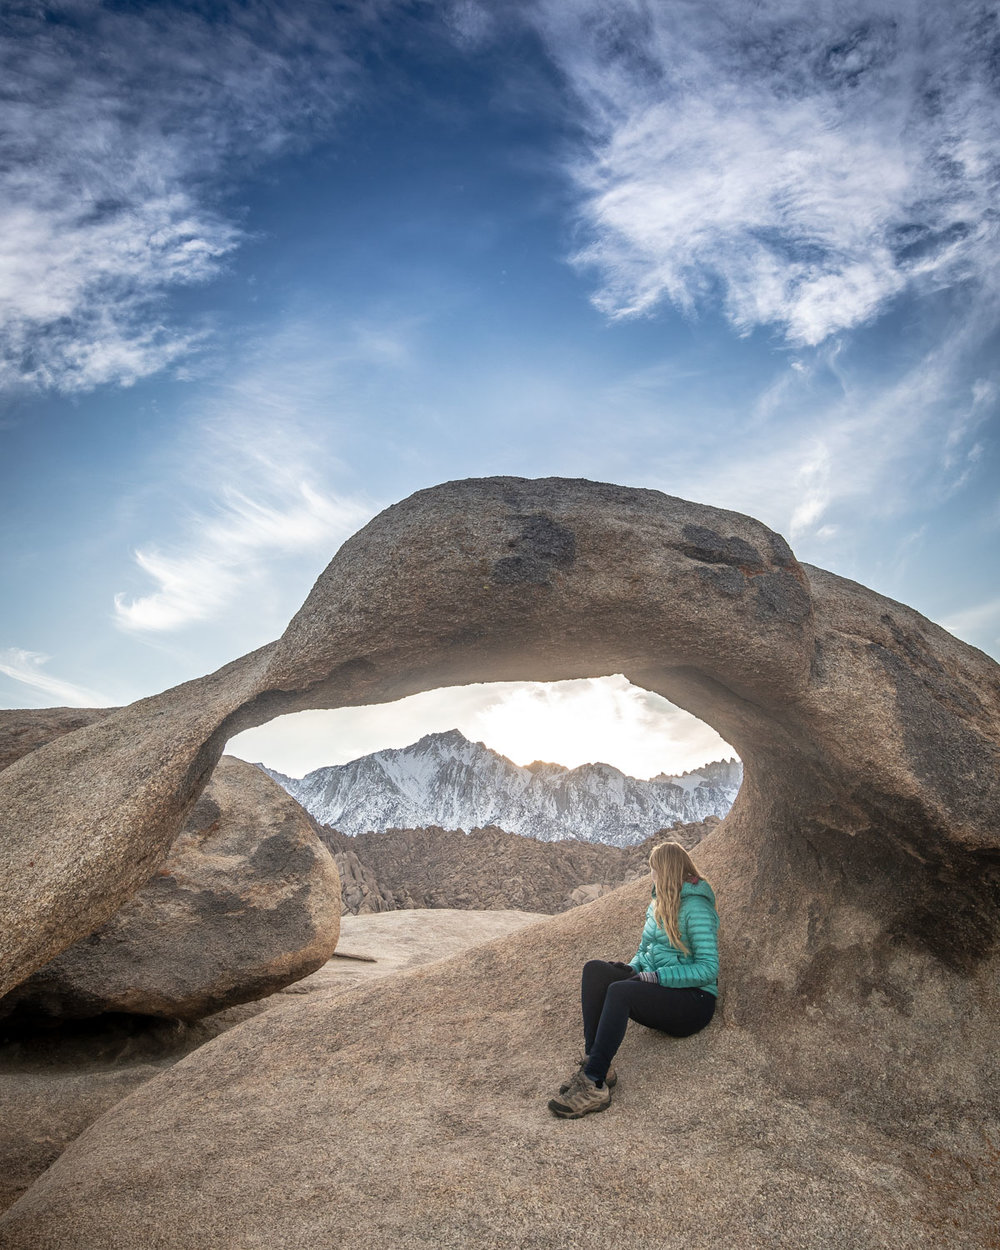 Sunset at Mobius Arch